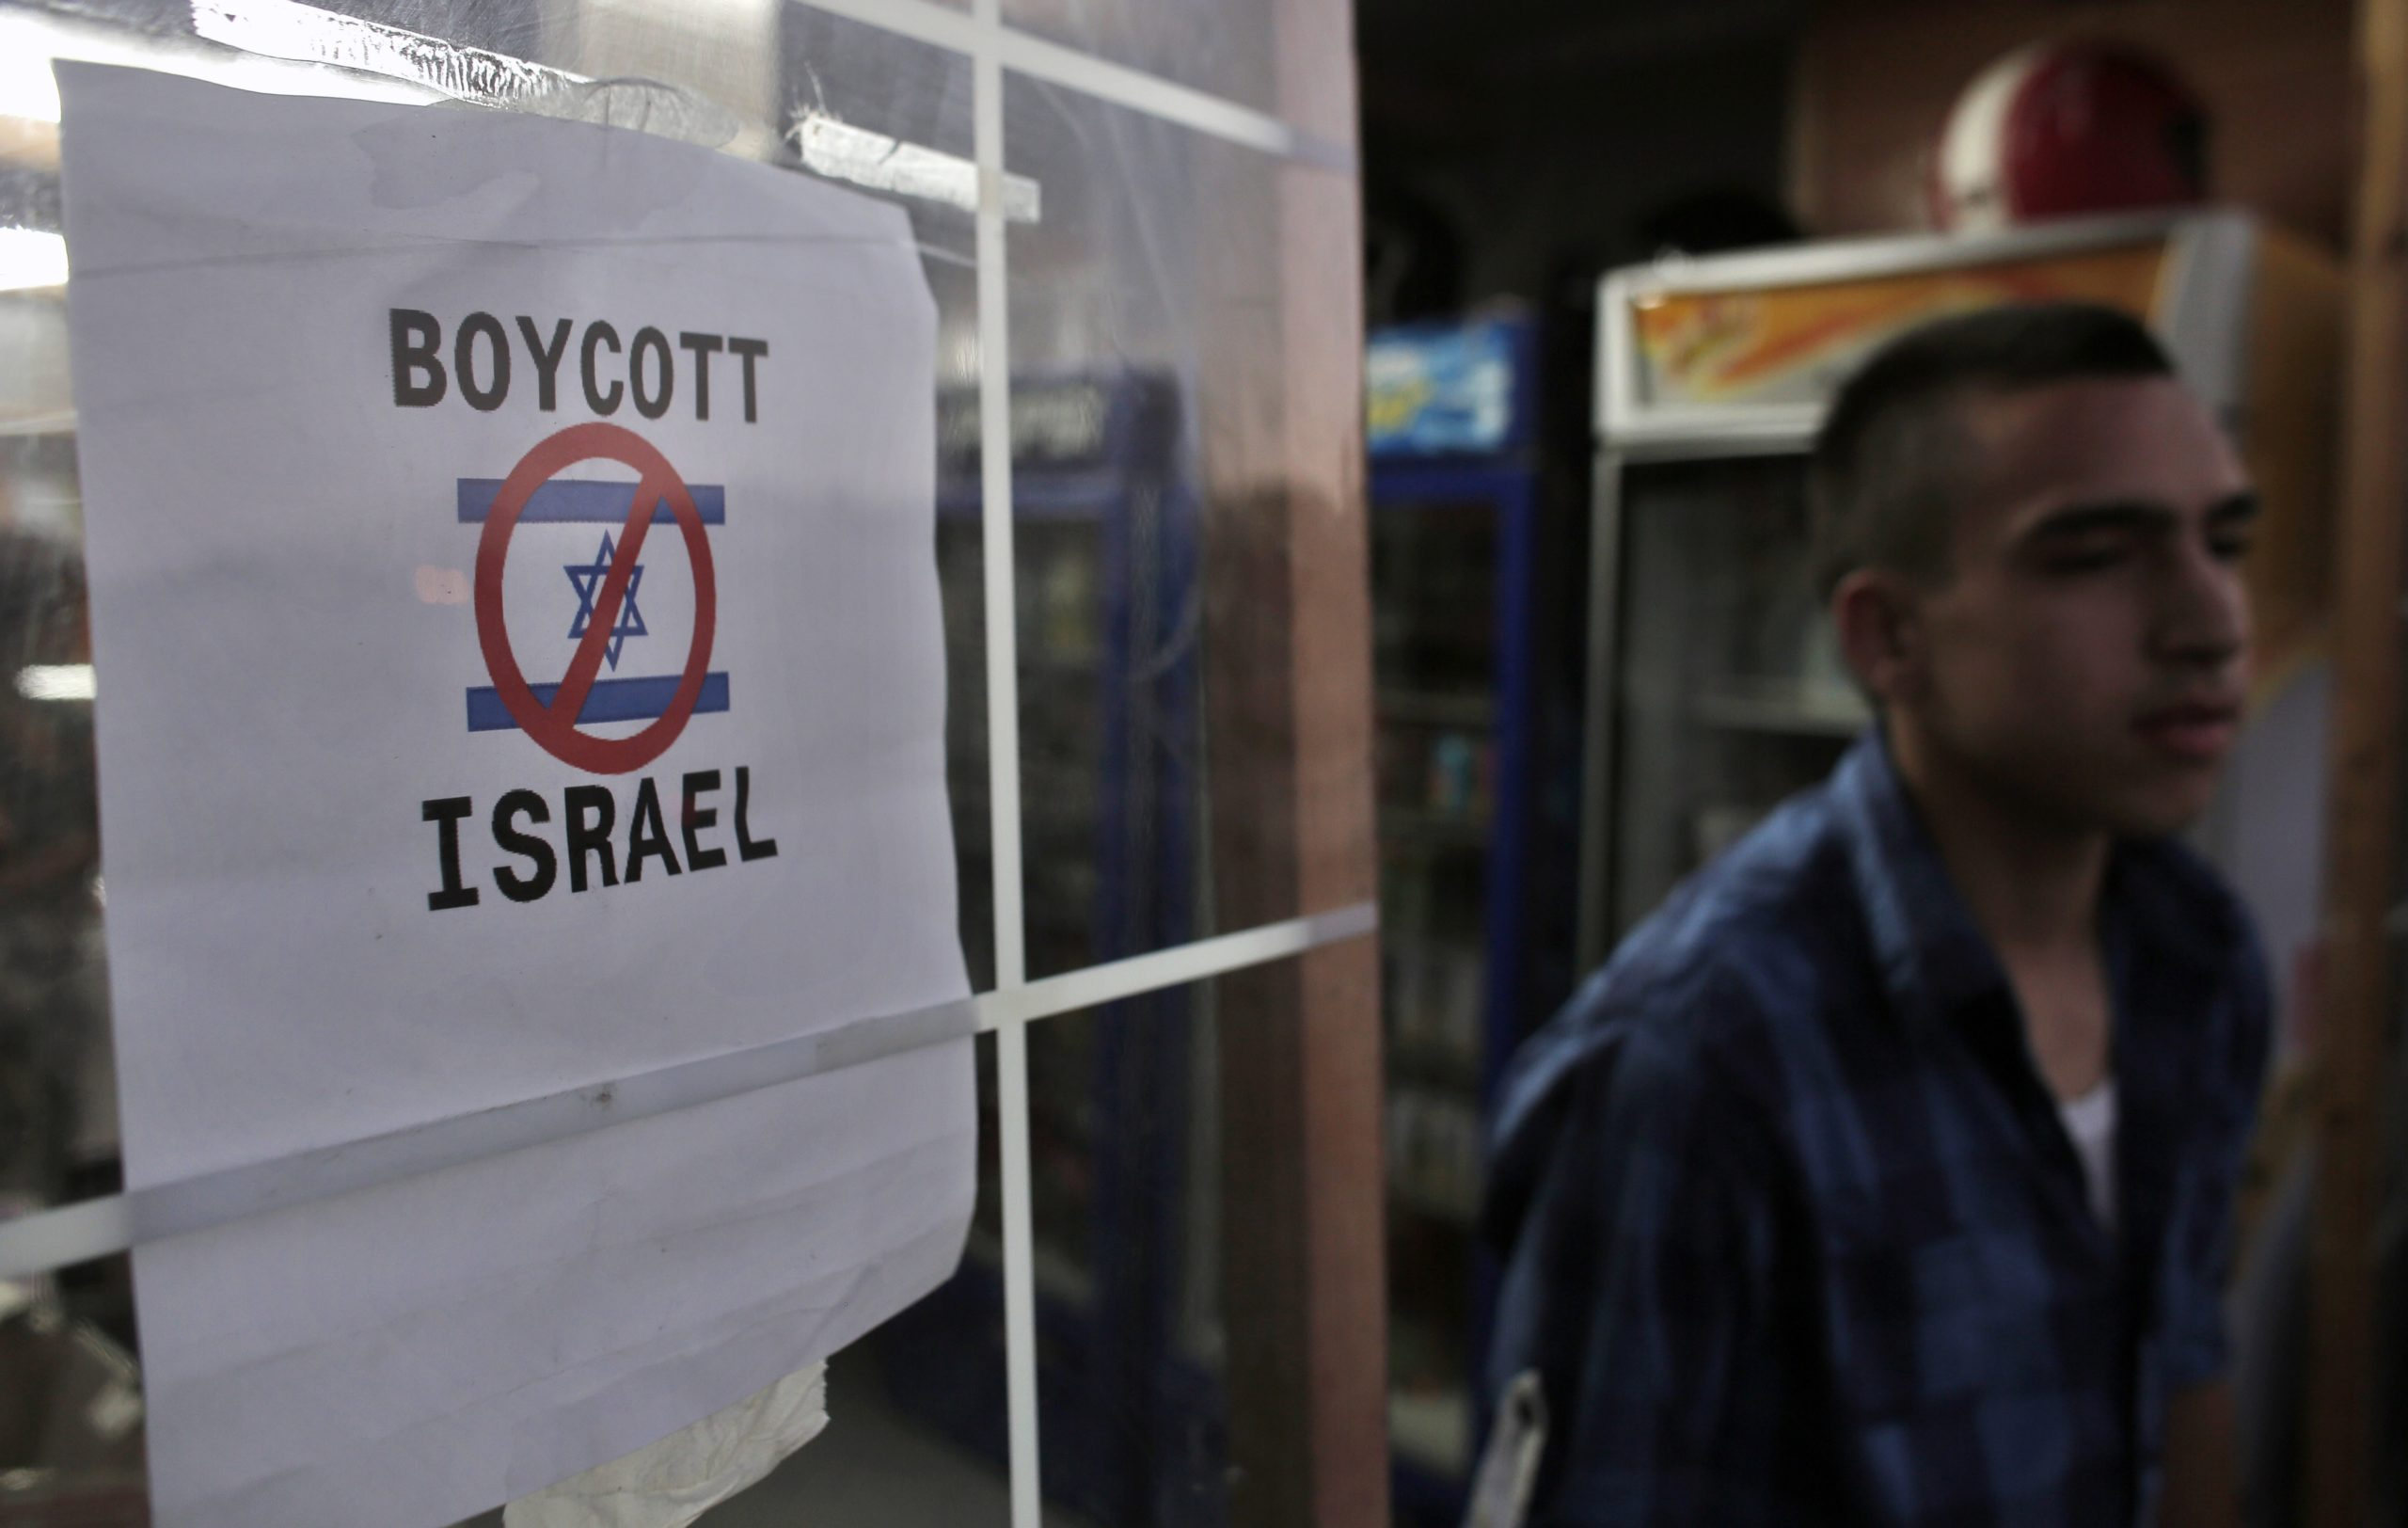 Boycott Israel sign in east Jerusalem (AHMAD GHARABLI/AFP via Getty Images)